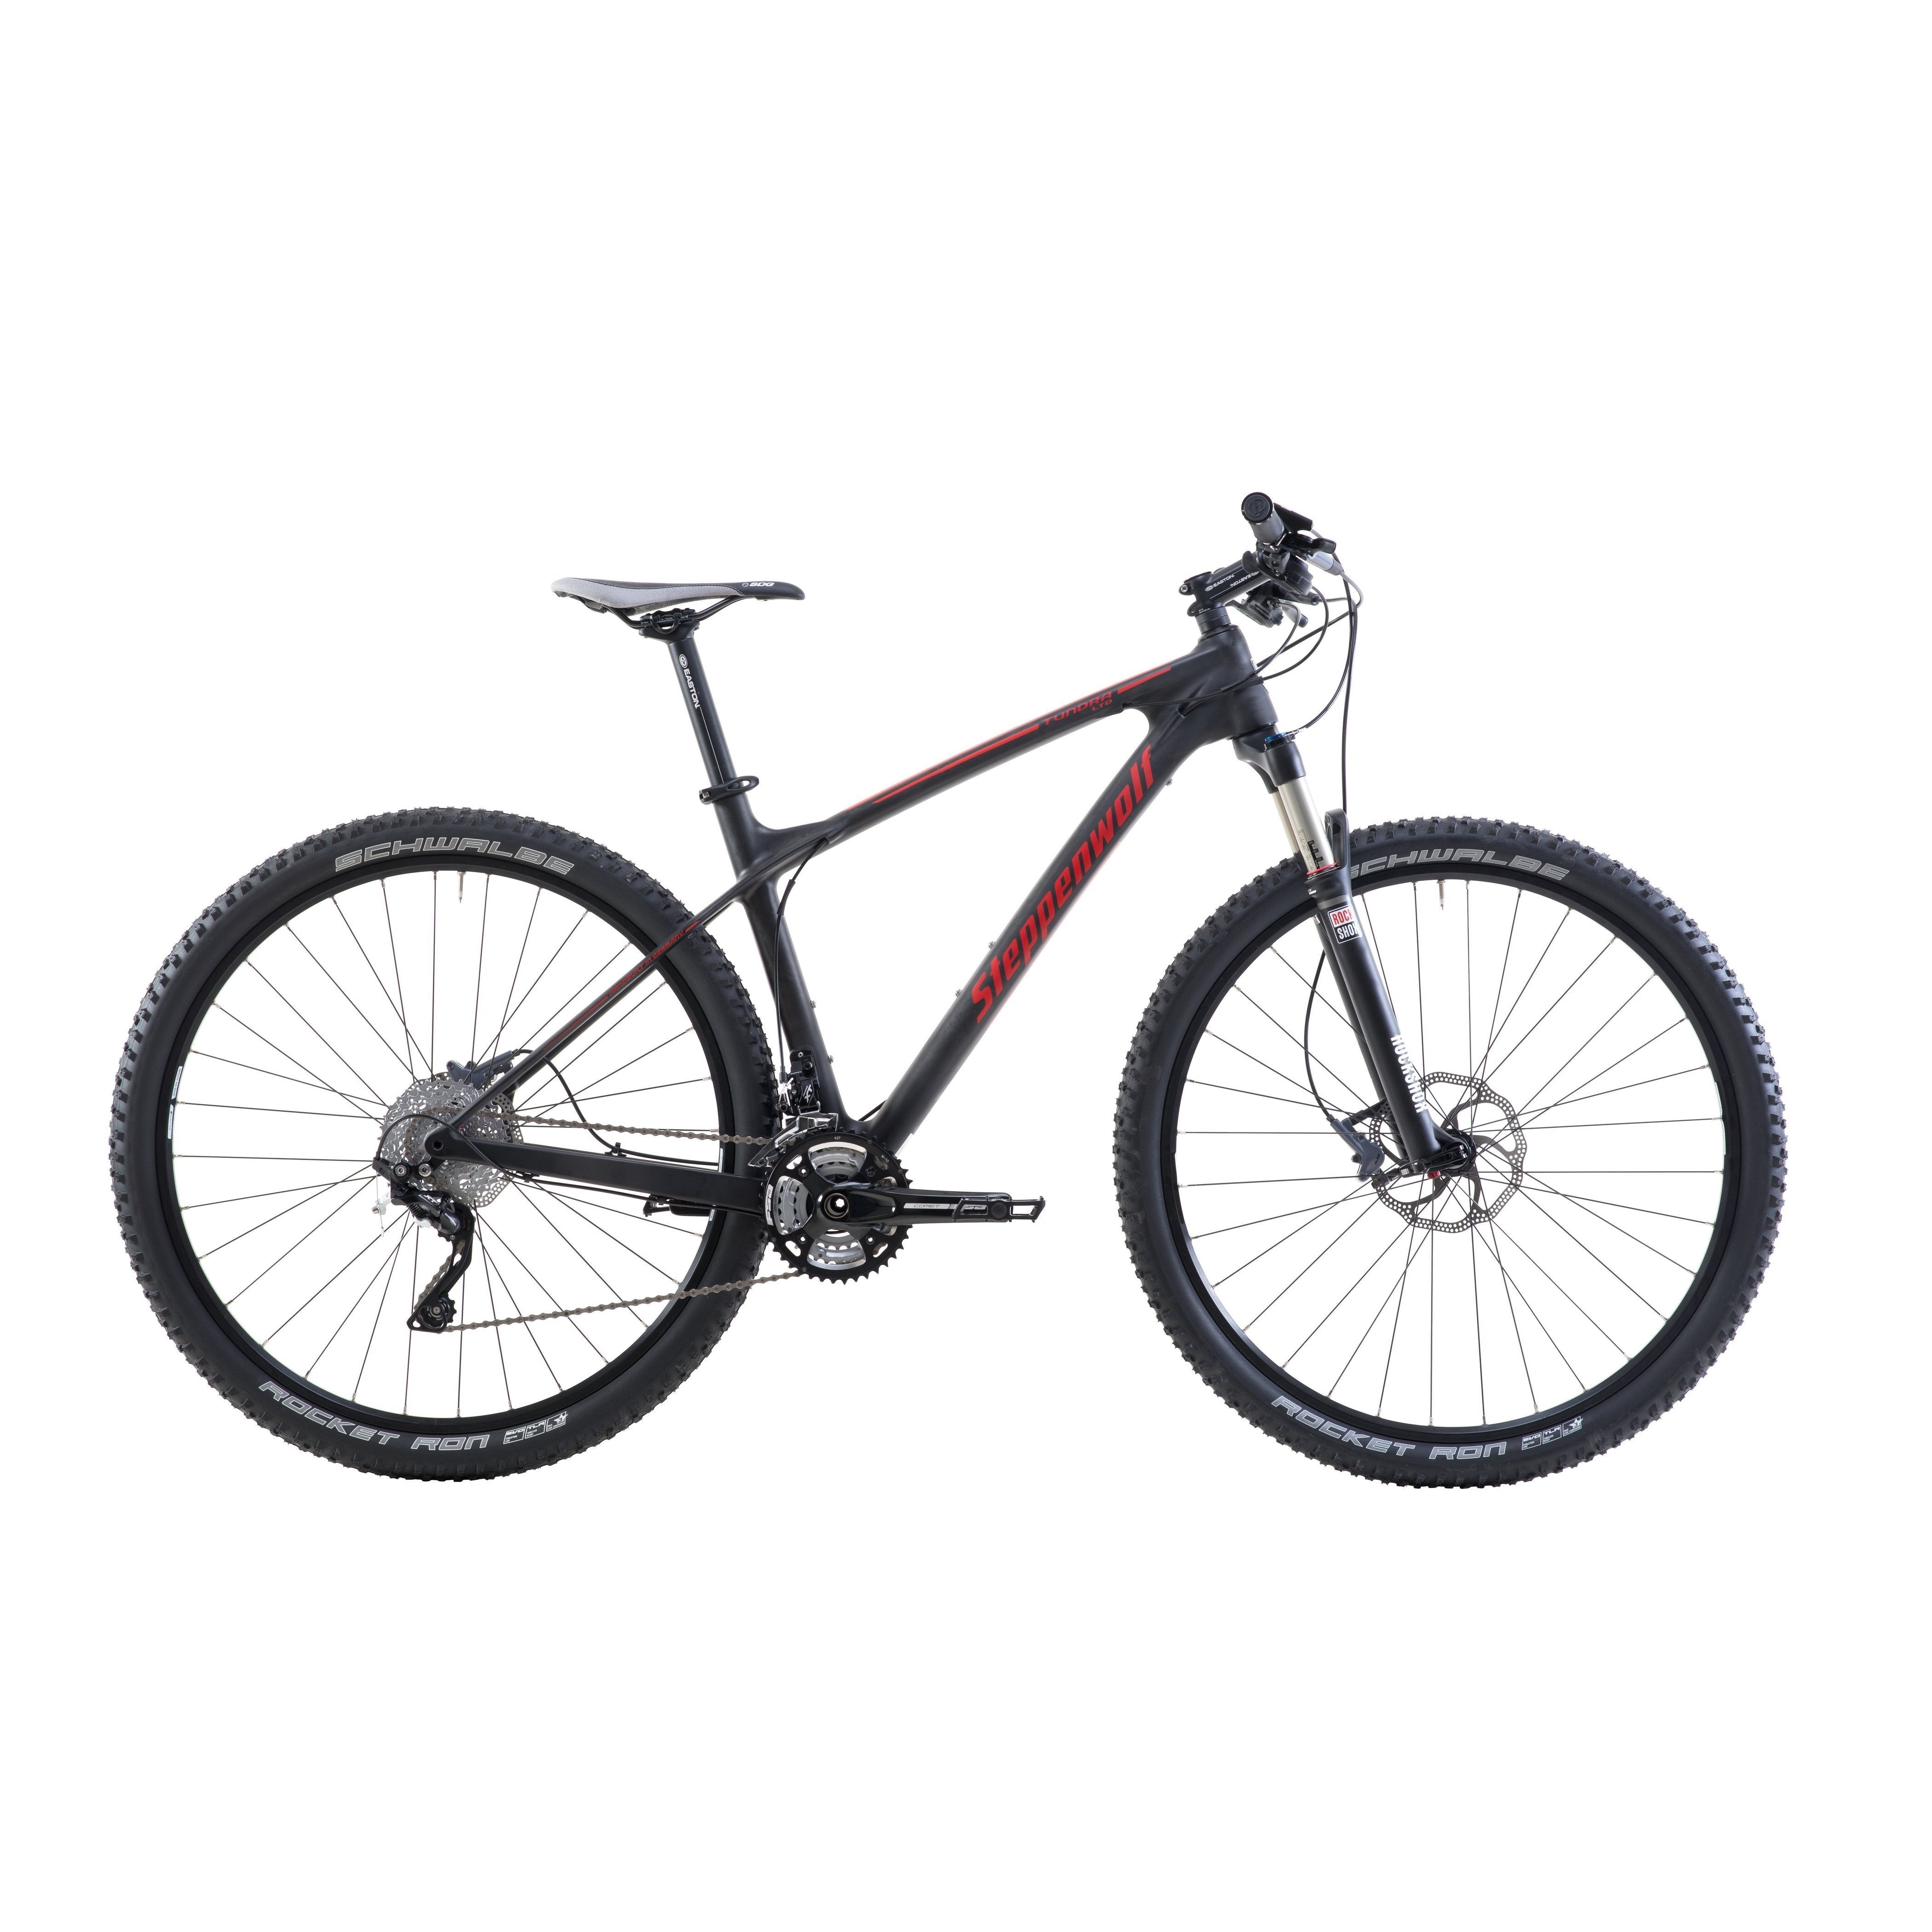 Steppenwolf Tundra Carbon LTD 29-Inch Hardtail  MTB Bicycle - Mountain Bike Default Title Ridetique.com